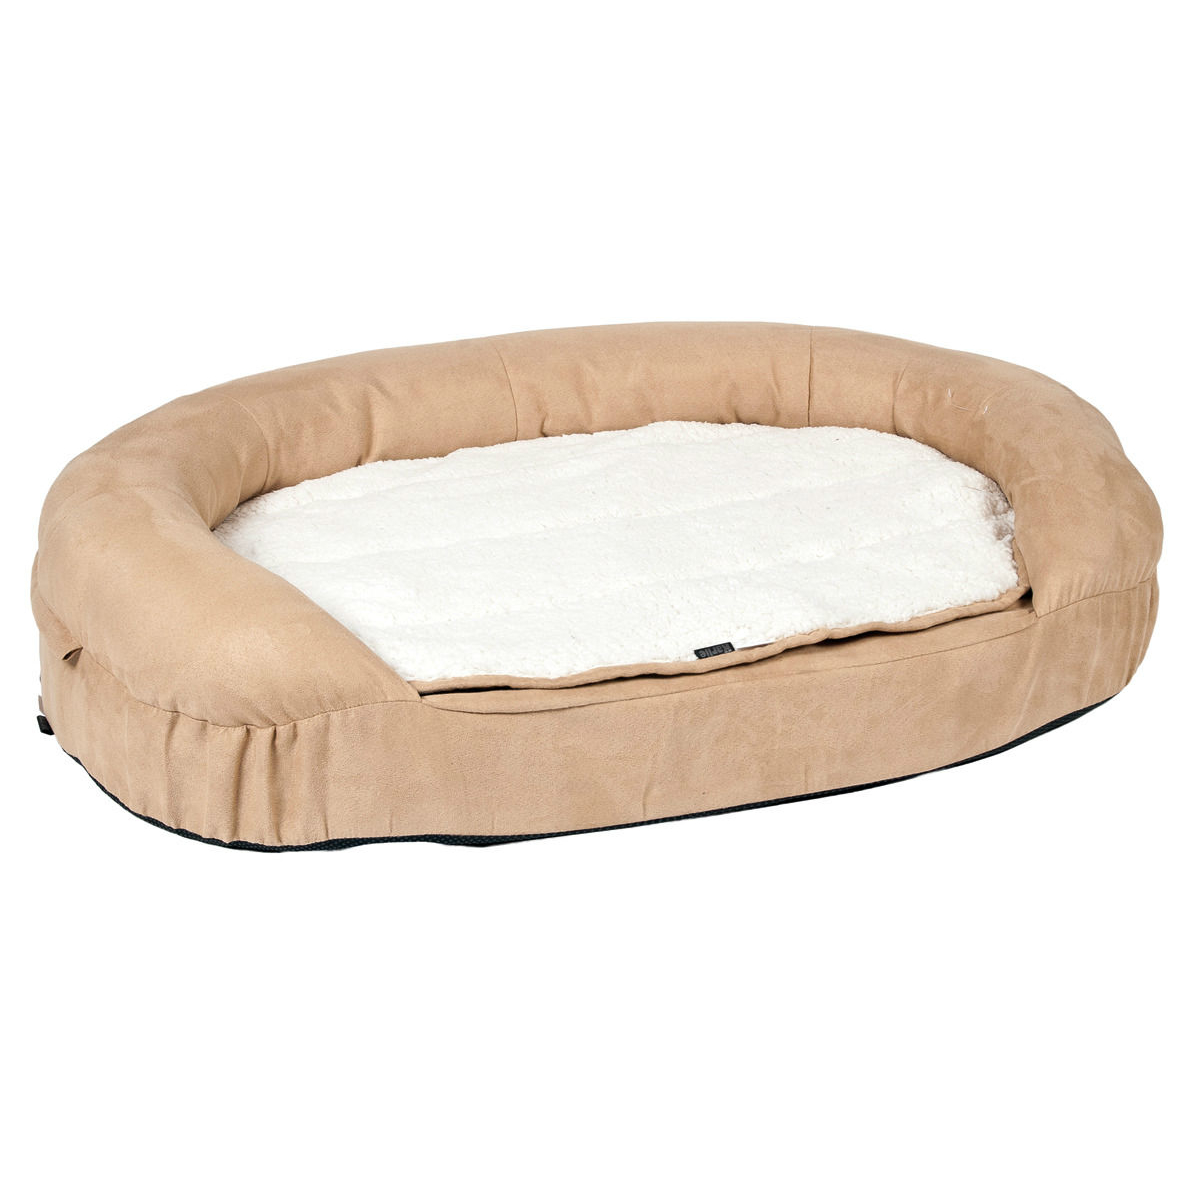 Karlie Flamingo Ortho Bed oval, Bild 5